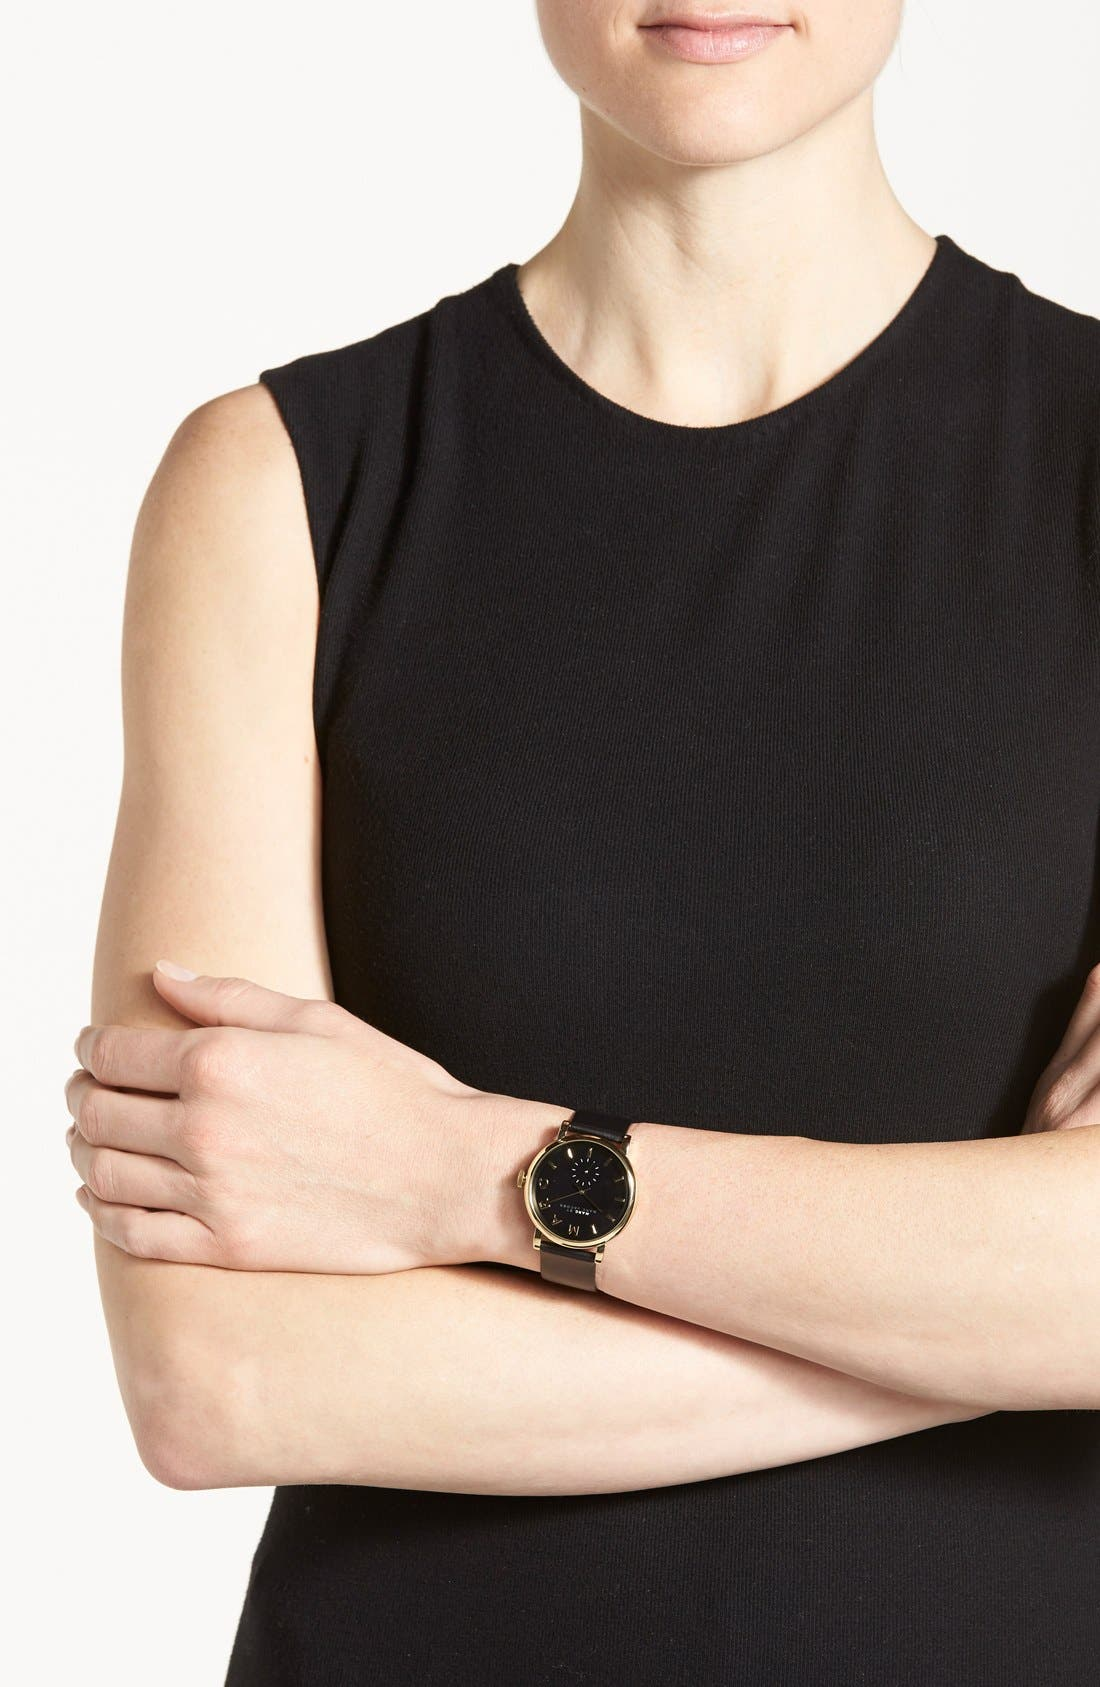 MARC JACOBS, 'Baker' Leather Strap Watch, 37mm, Alternate thumbnail 4, color, 001